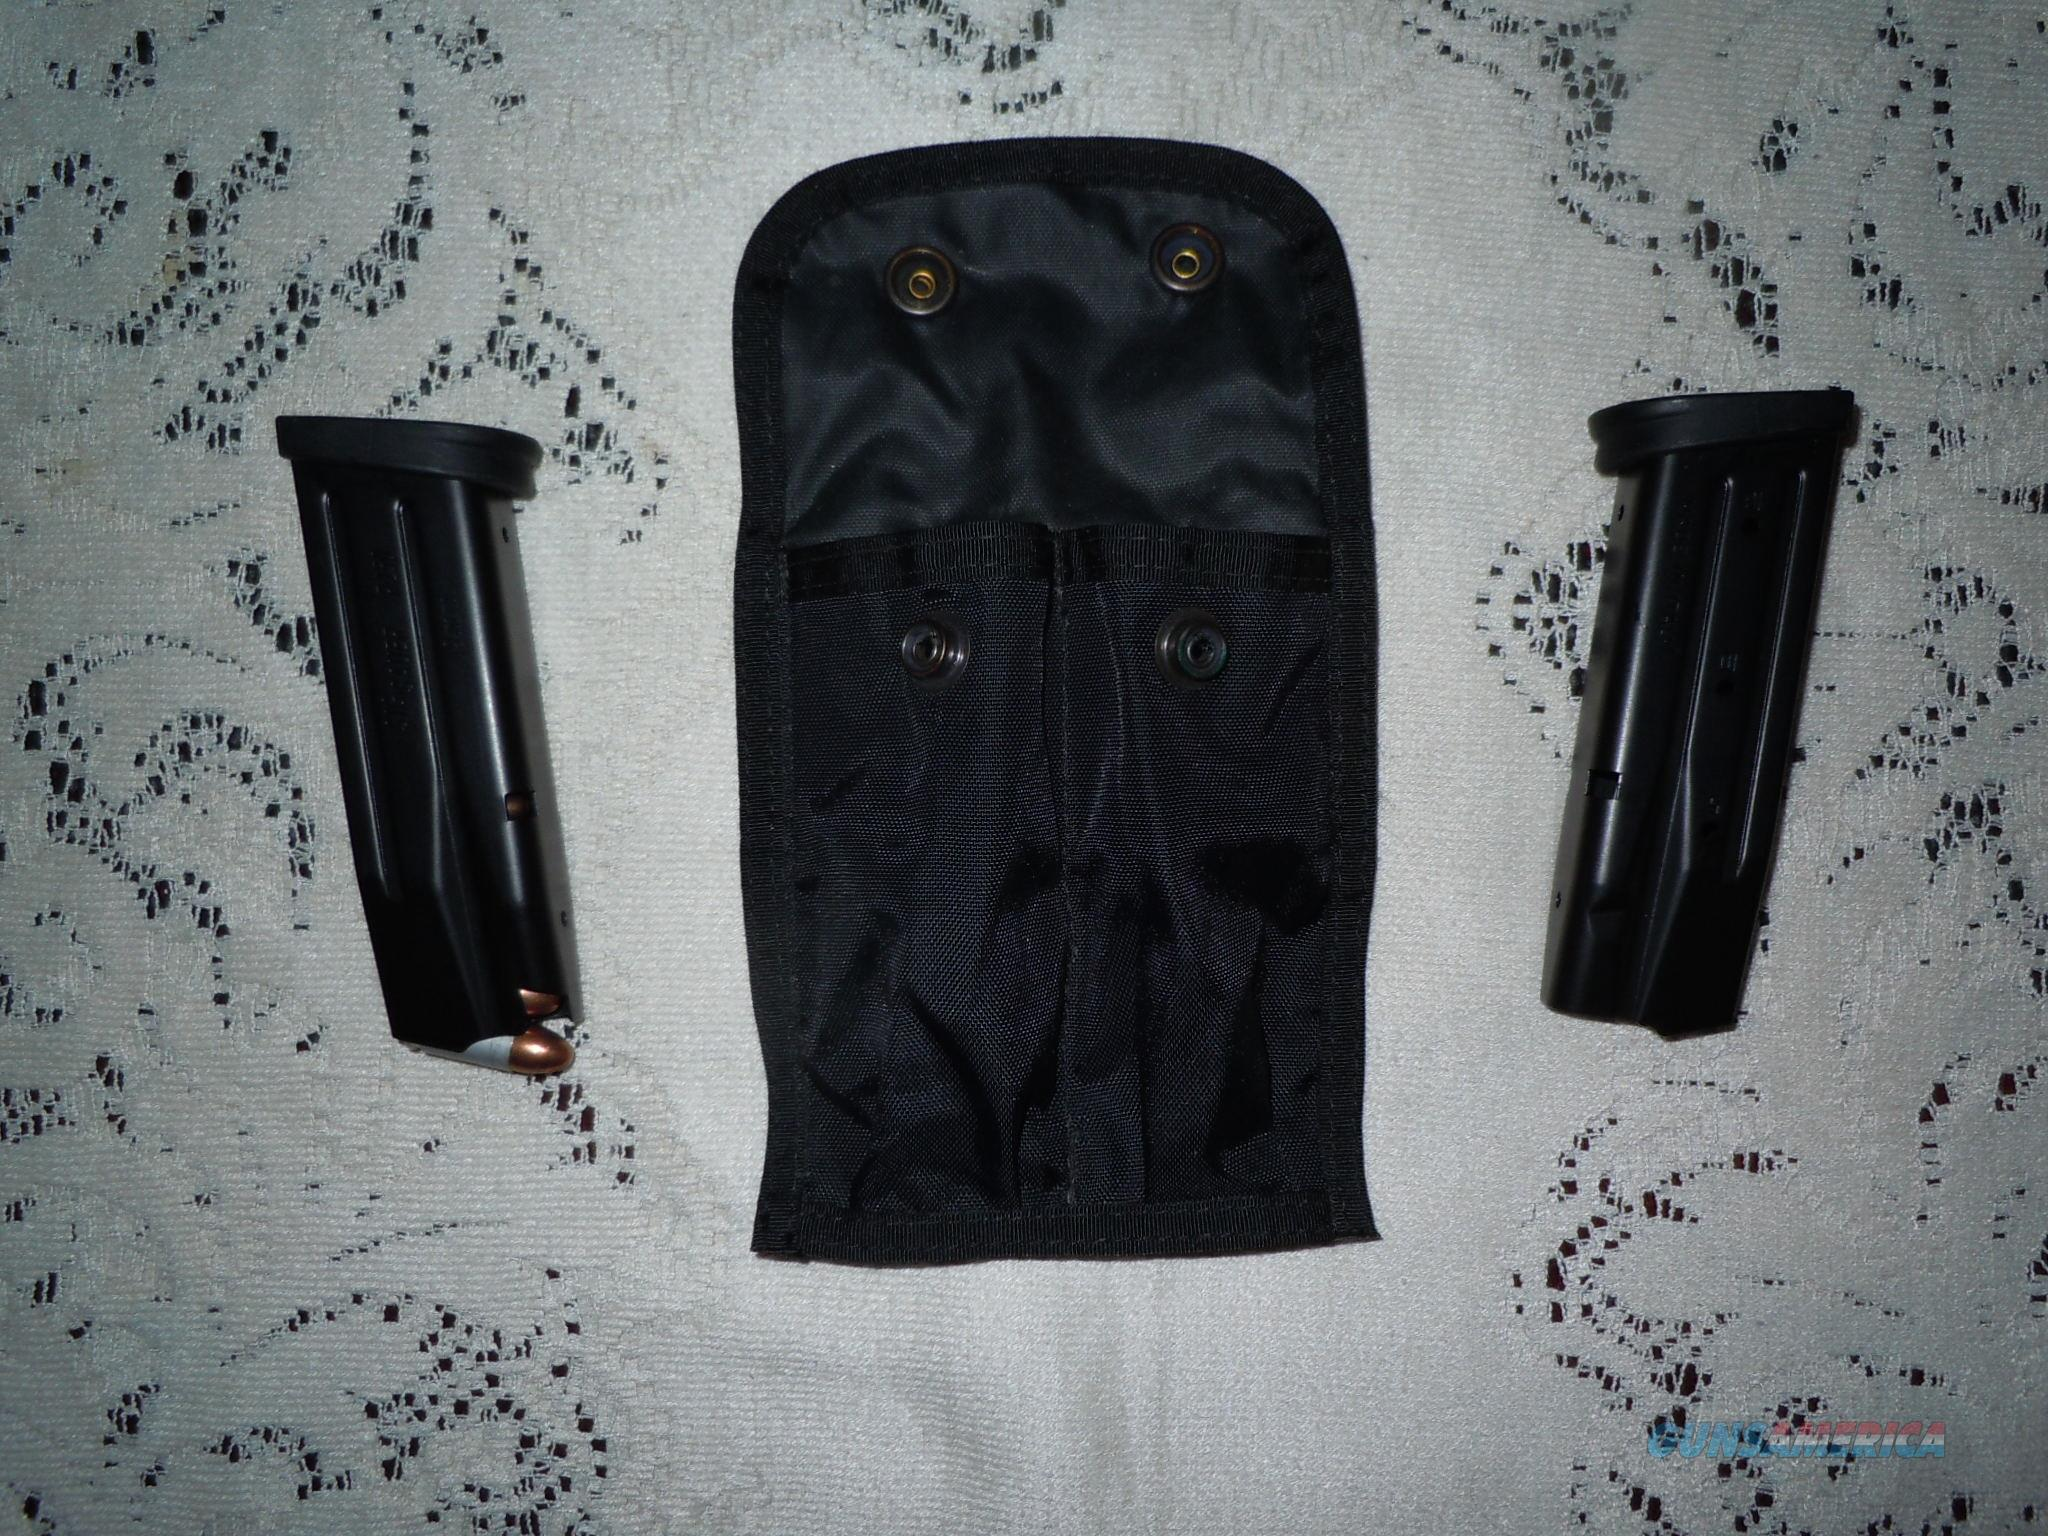 Sig Sauer 9mm P250 16 rnd magazines (2)  9mm mags (2) Sig P250 mags 16 round clips    Non-Guns > Magazines & Clips > Pistol Magazines > Sig